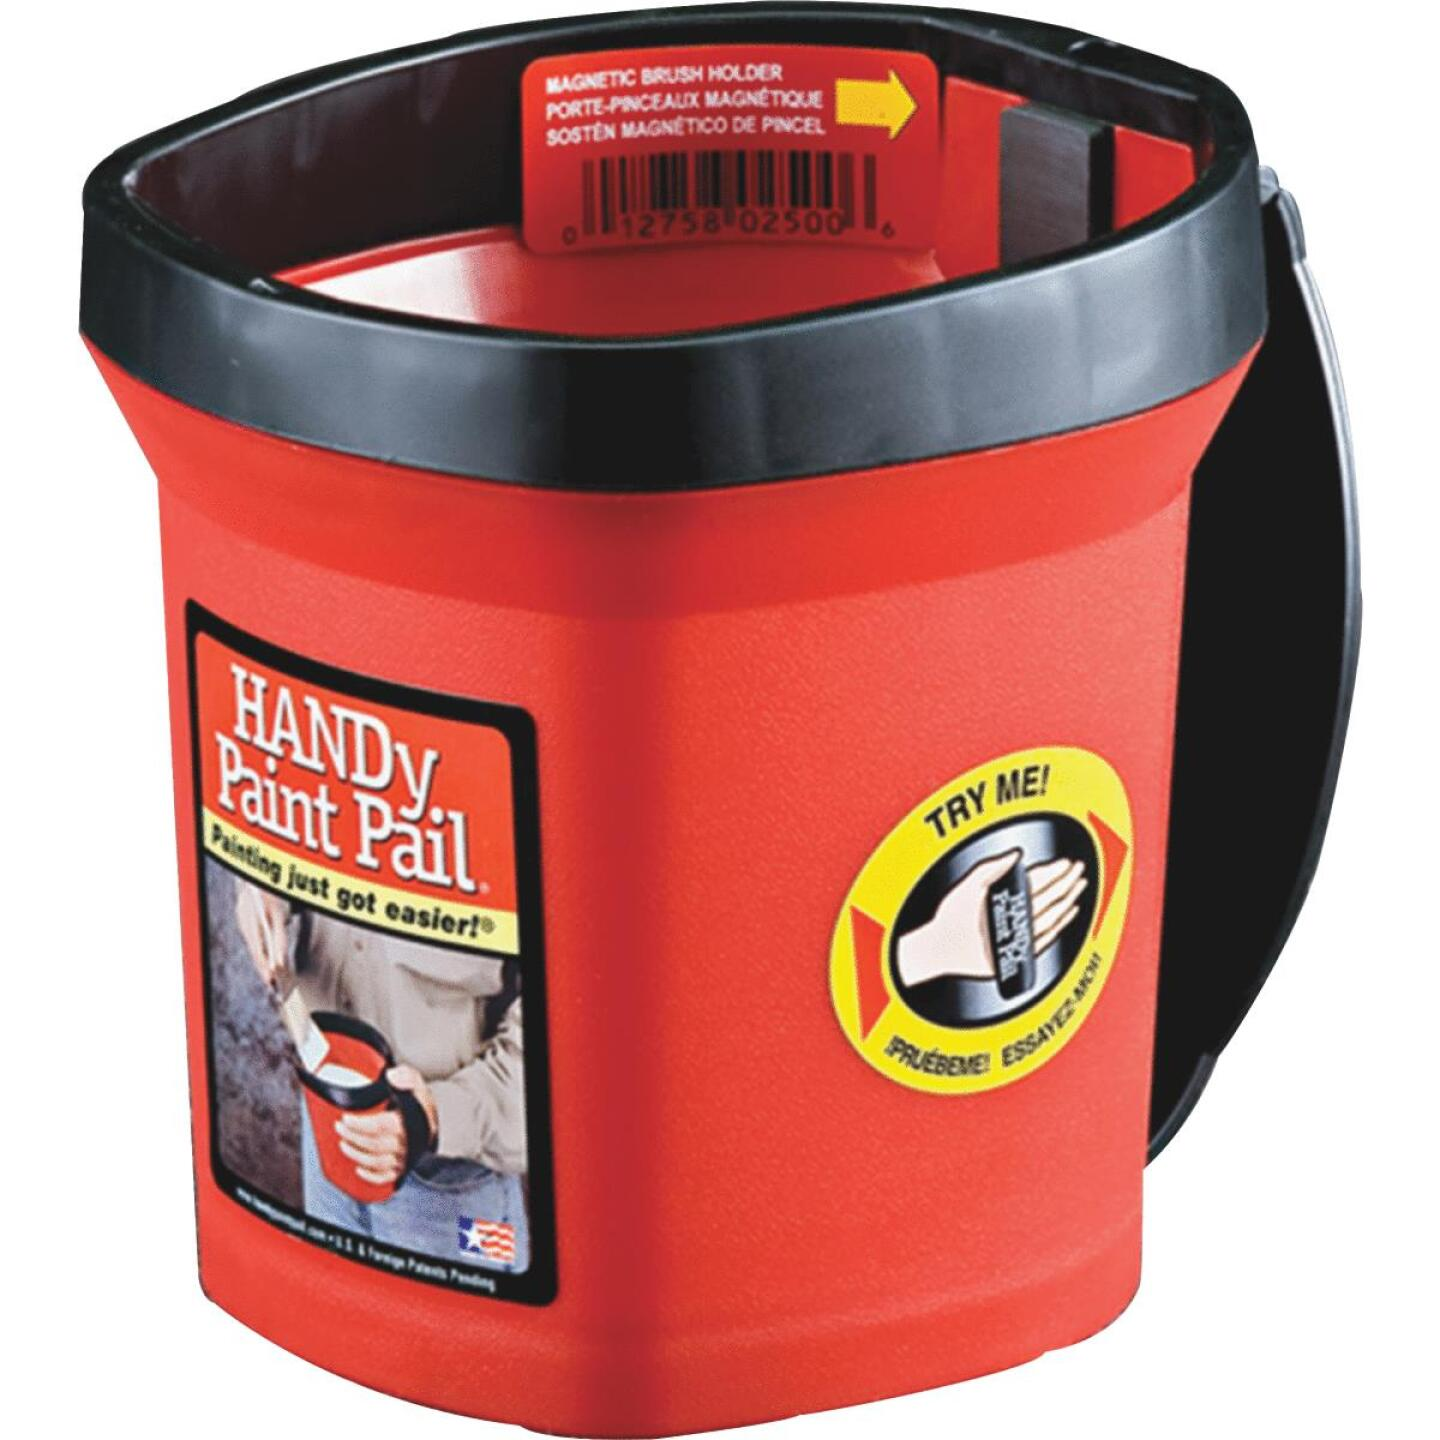 HANDy Paint Pail 1 Qt. Red Painter's Bucket w/Adjustable Strap And Magnetic Brush Holder Image 3